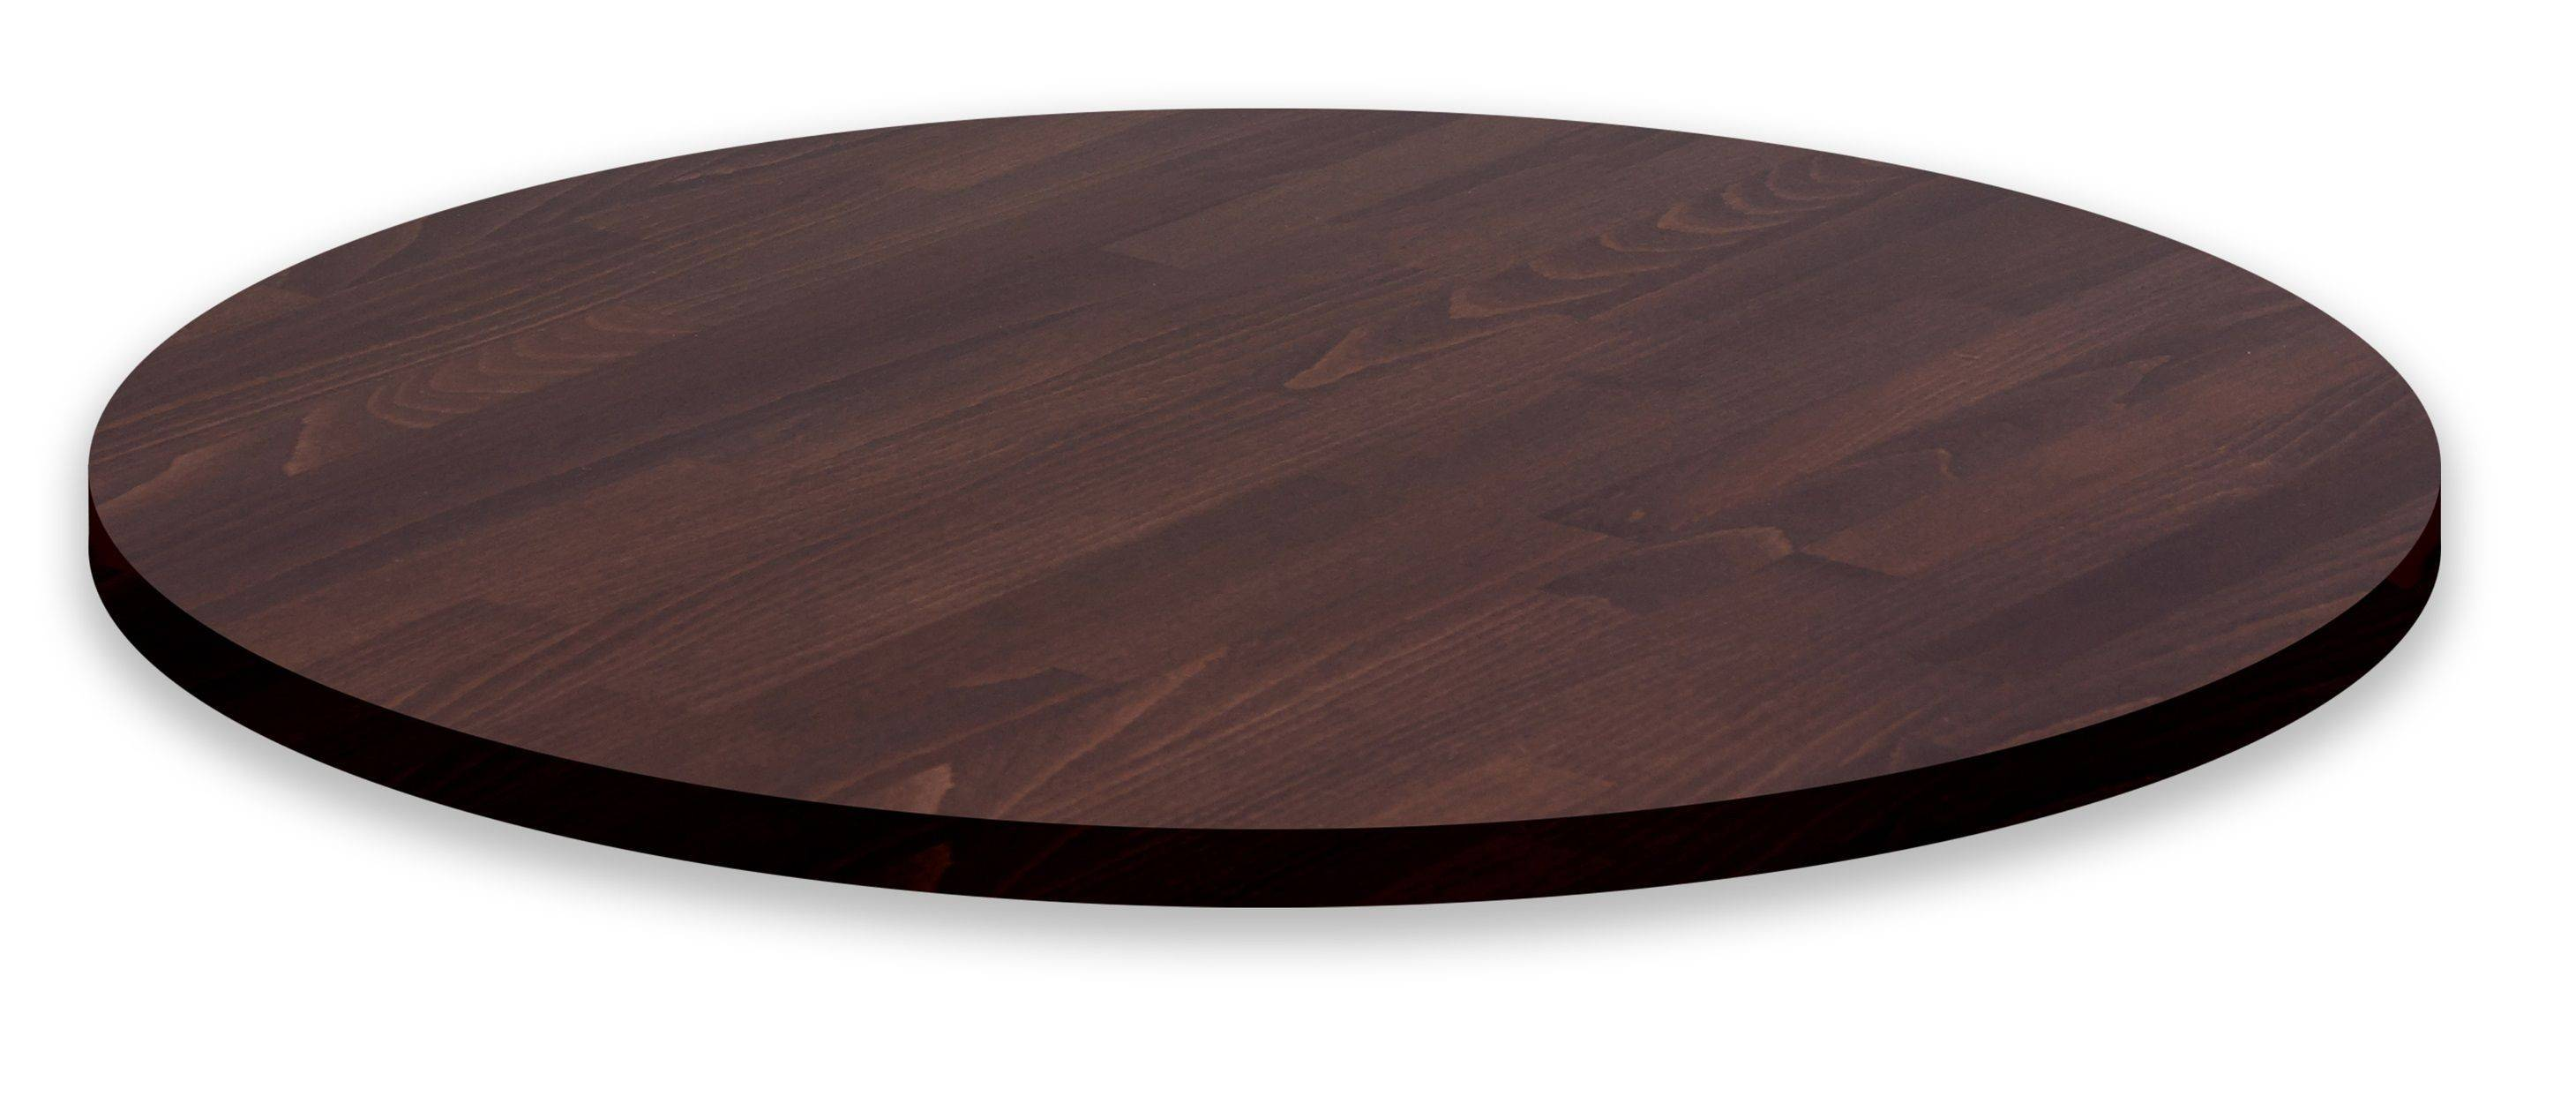 Round Wood Table Tops Tabletop Tables Furnitures